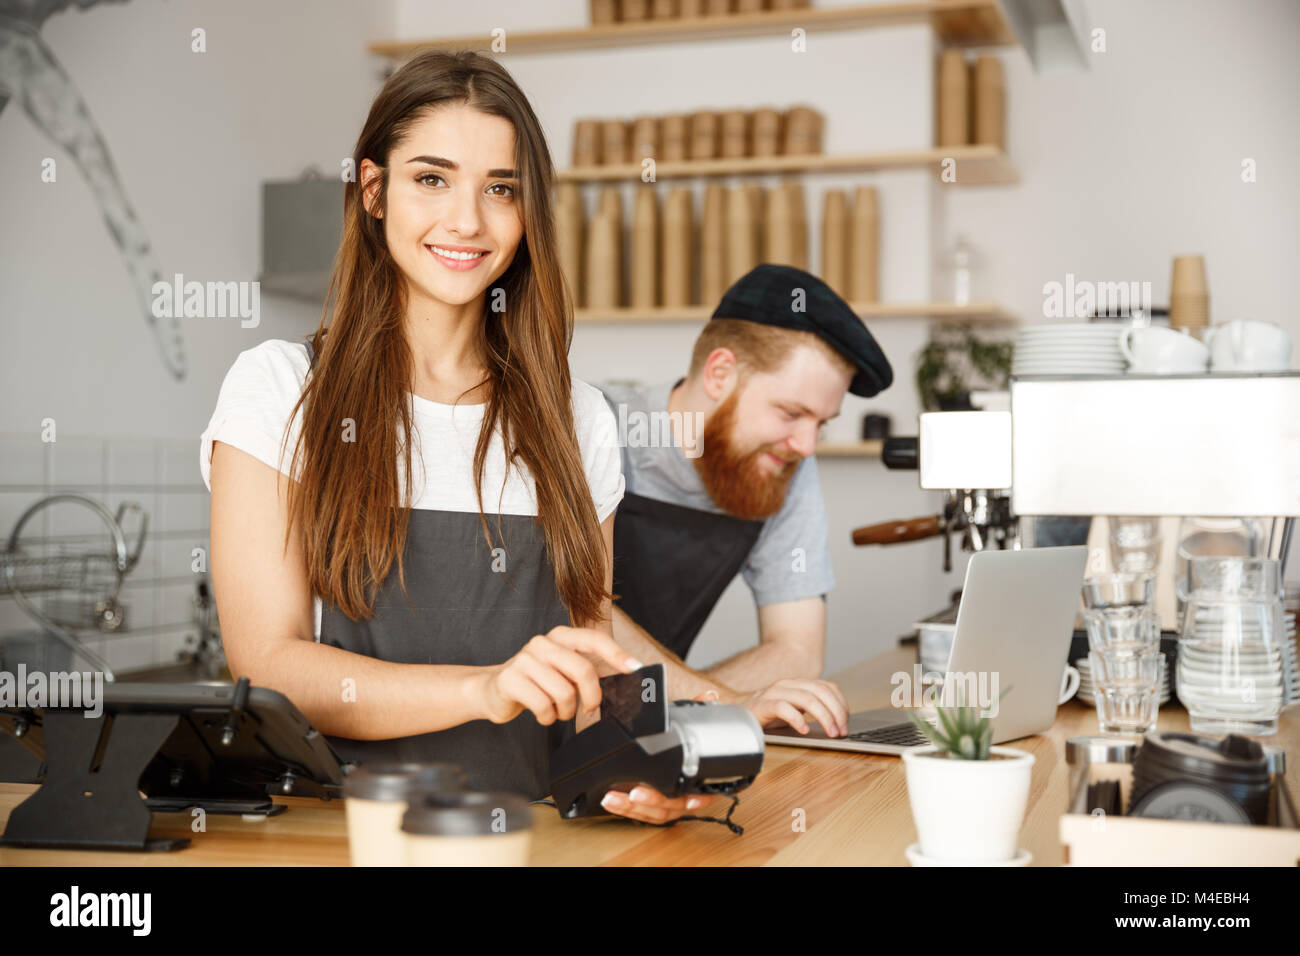 Coffee Business Concept - Beautiful female barista giving payment service for customer with credit card and smiling - Stock Image